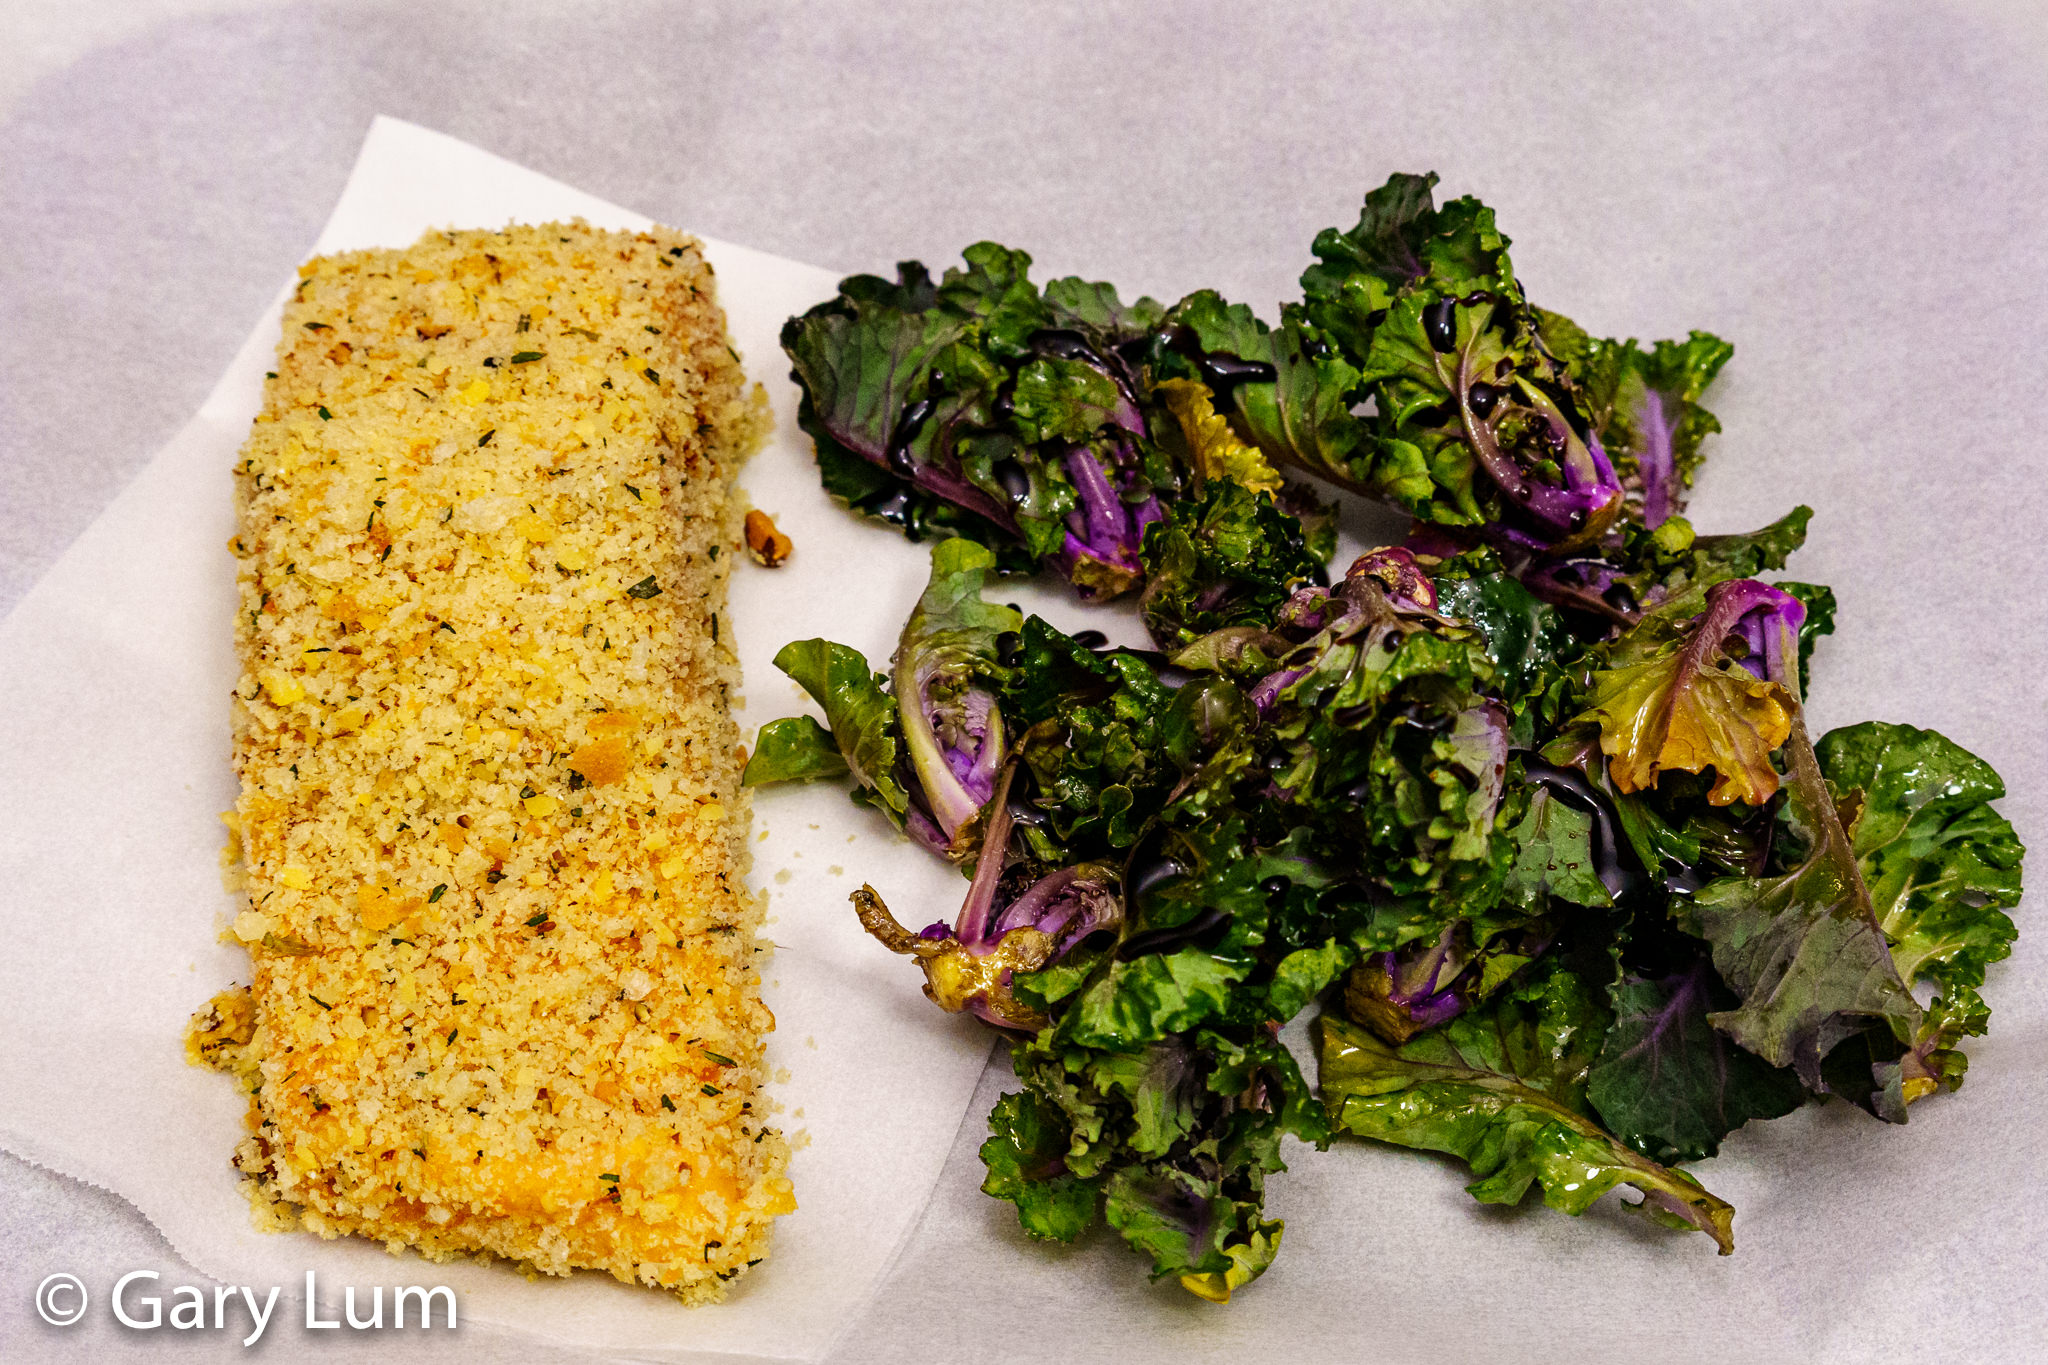 Raw crumbed salmon and seasoned kale sprouts.